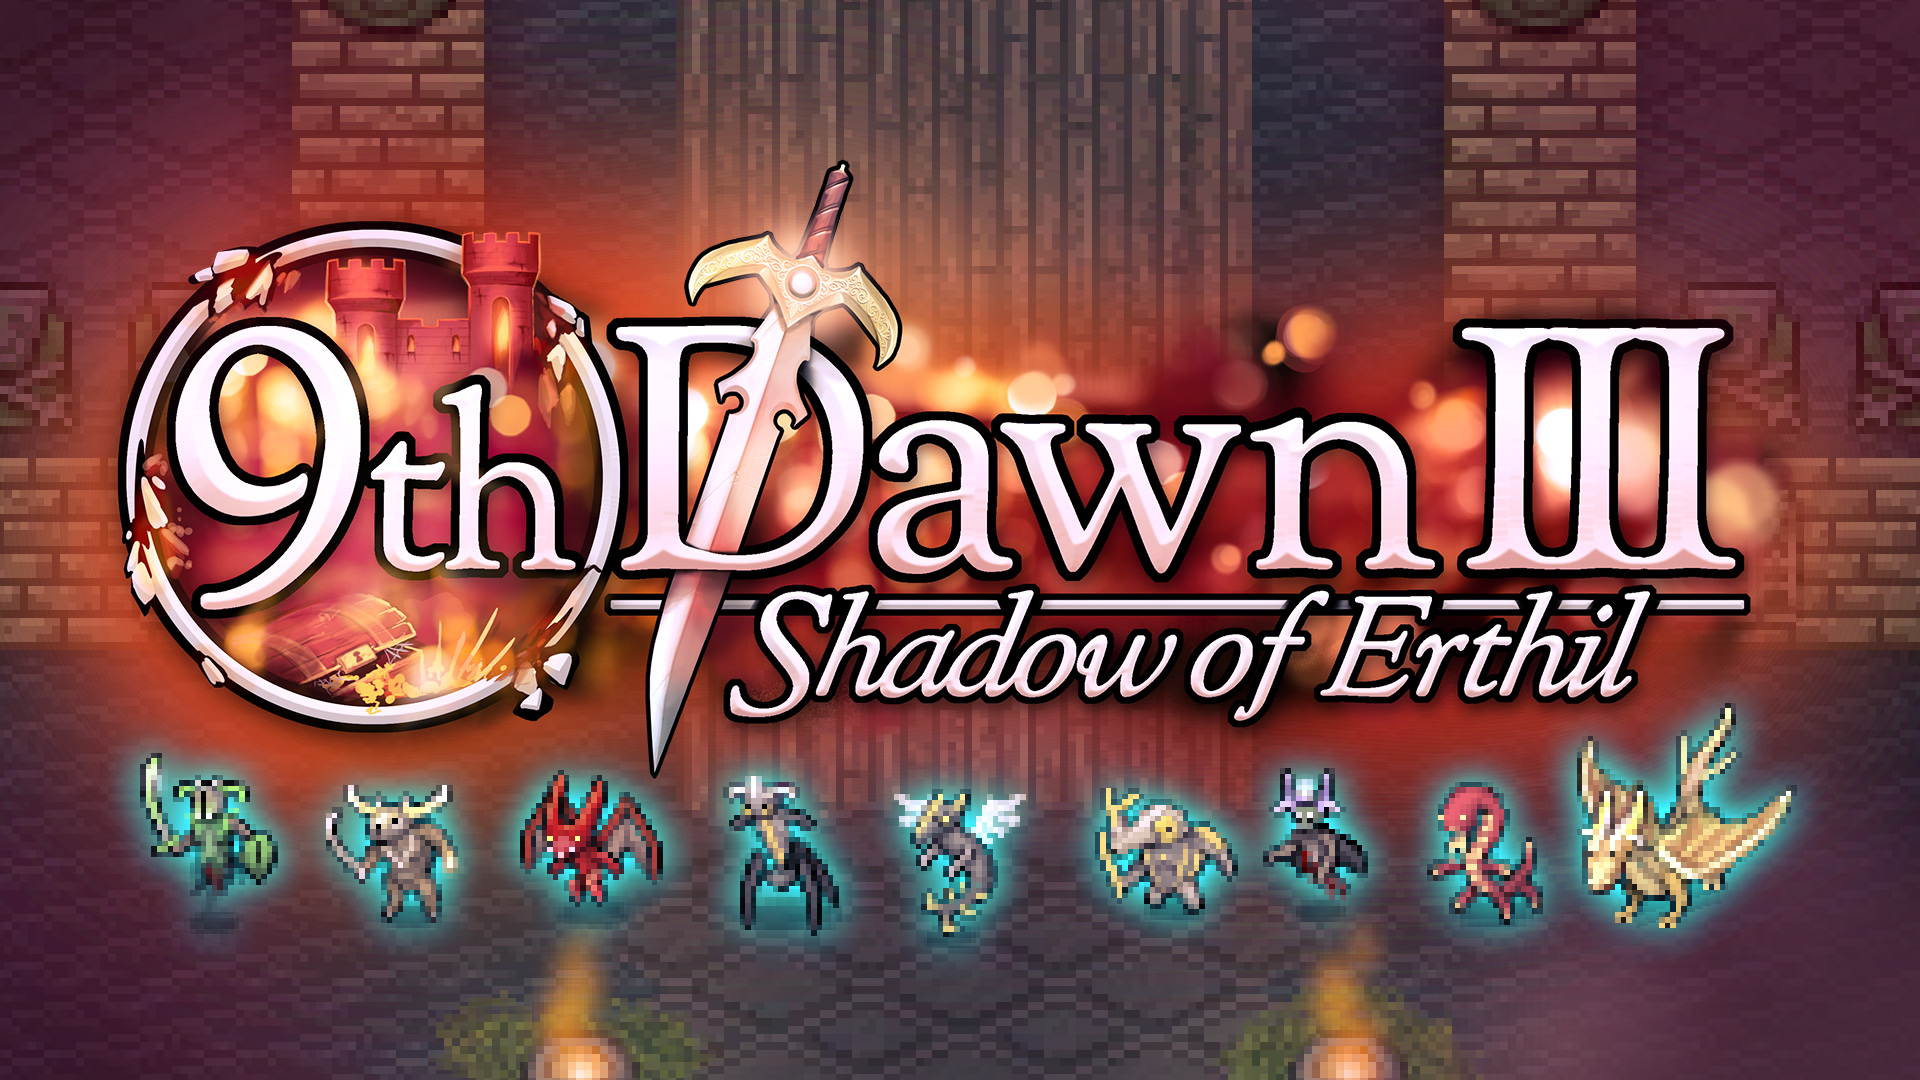 Huge Retro-Style Open World Action RPG '9th Dawn 3' Launching October 6th on iOS, Android, PC, and Consoles